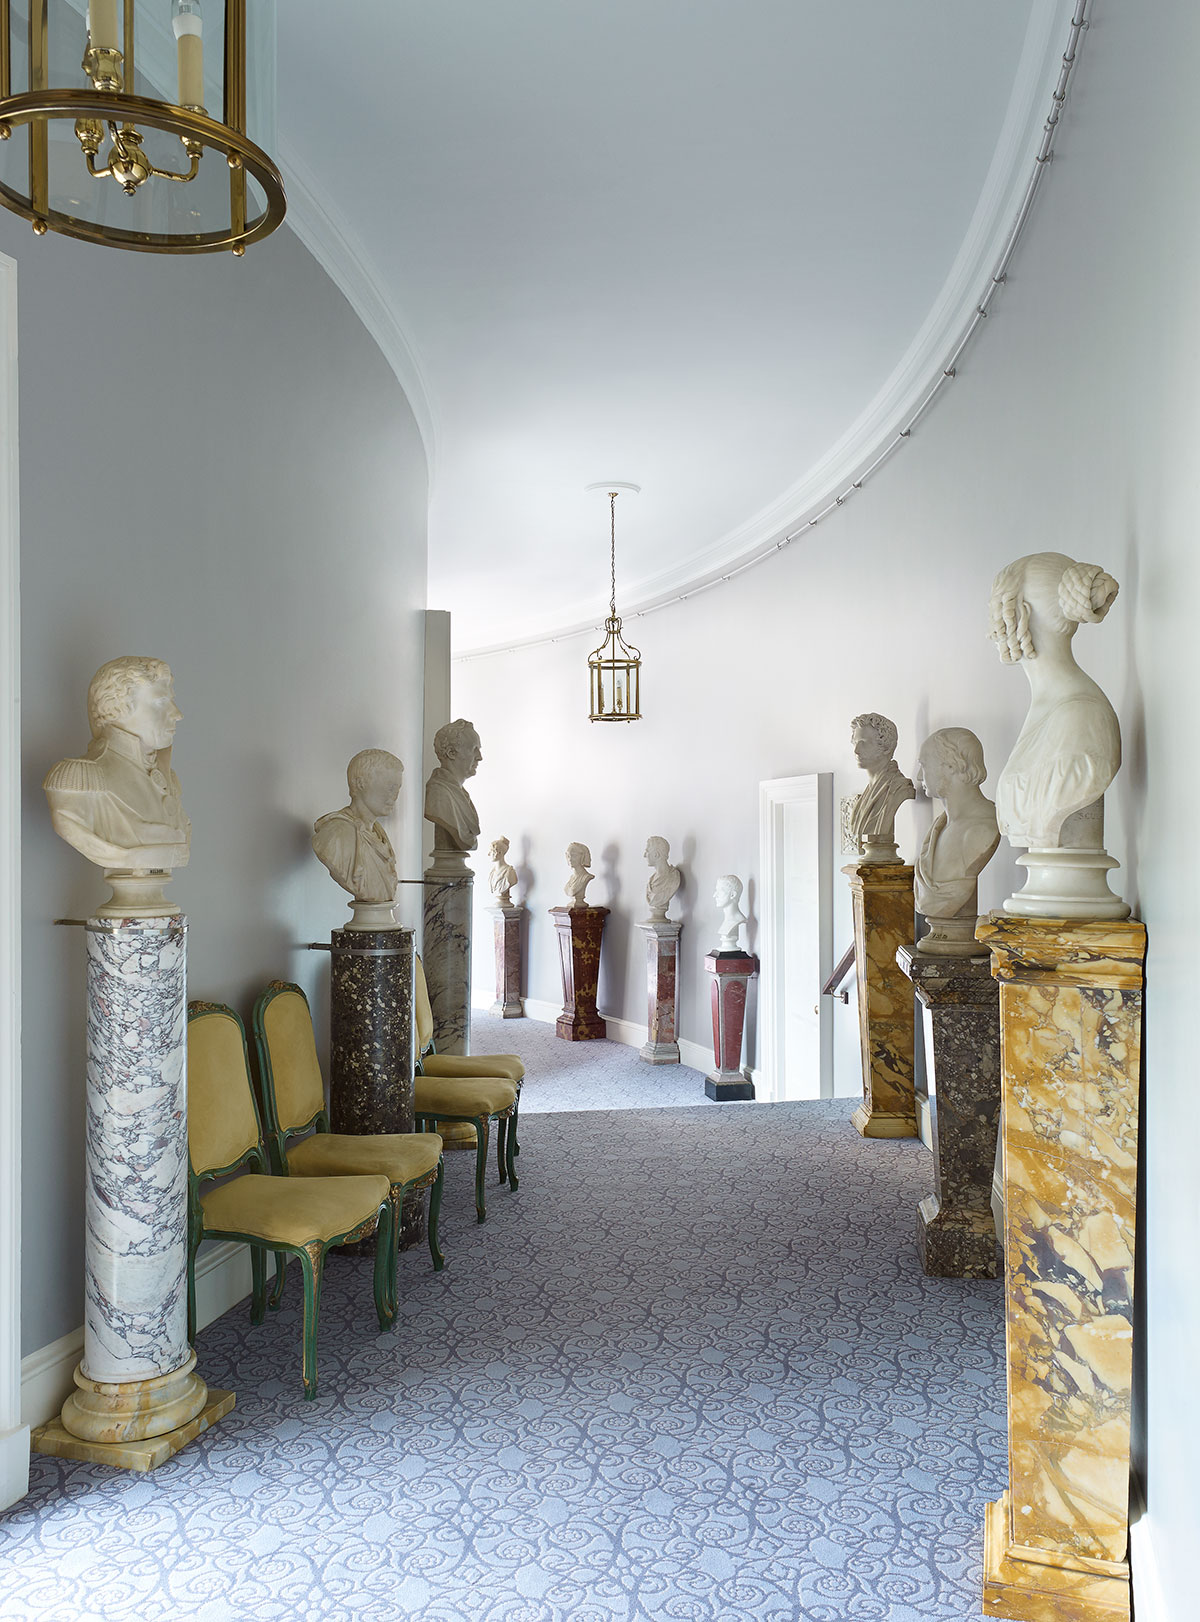 Cliveden House Hotel Marble Pedestals and Busts